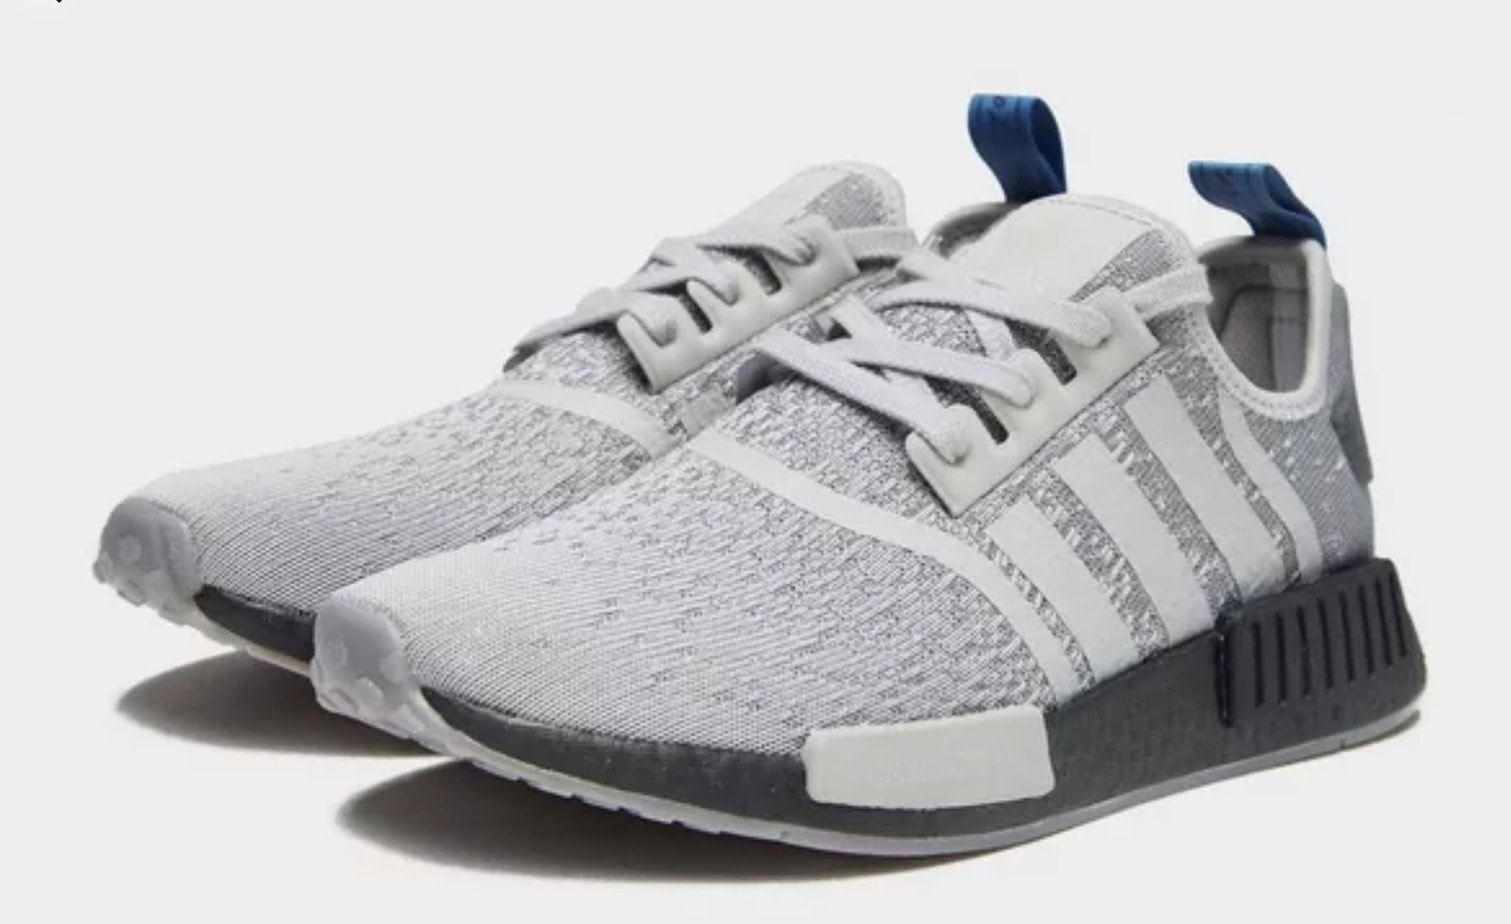 8b63c3a1fe848 adidas and JD Sports Dropped Another Exclusive NMD R1 This Month